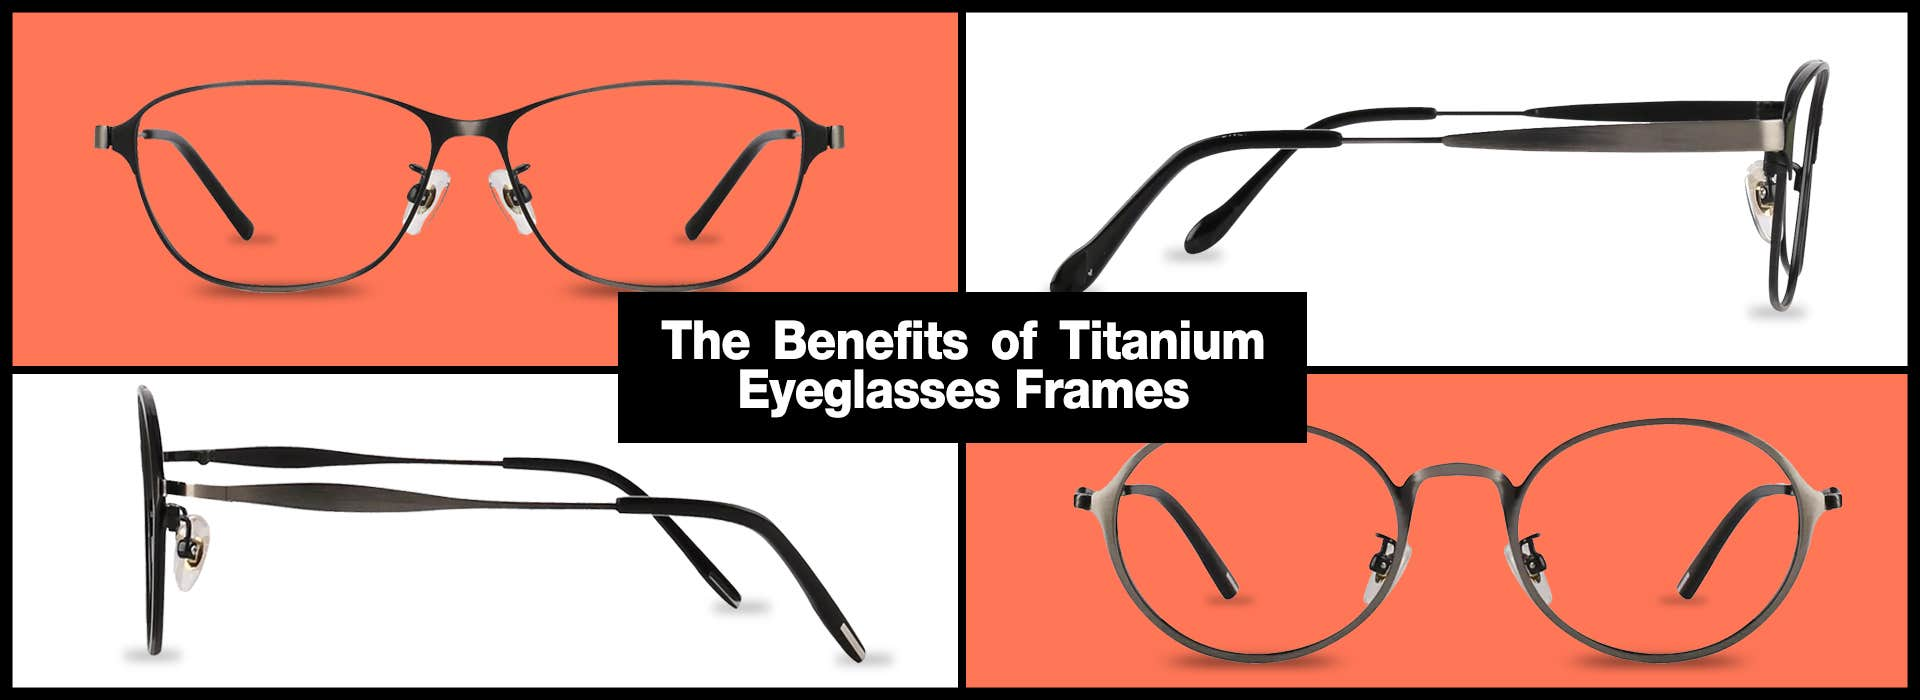 Benefits of Titanium Eyeglasses Frames - Goggles4u.com